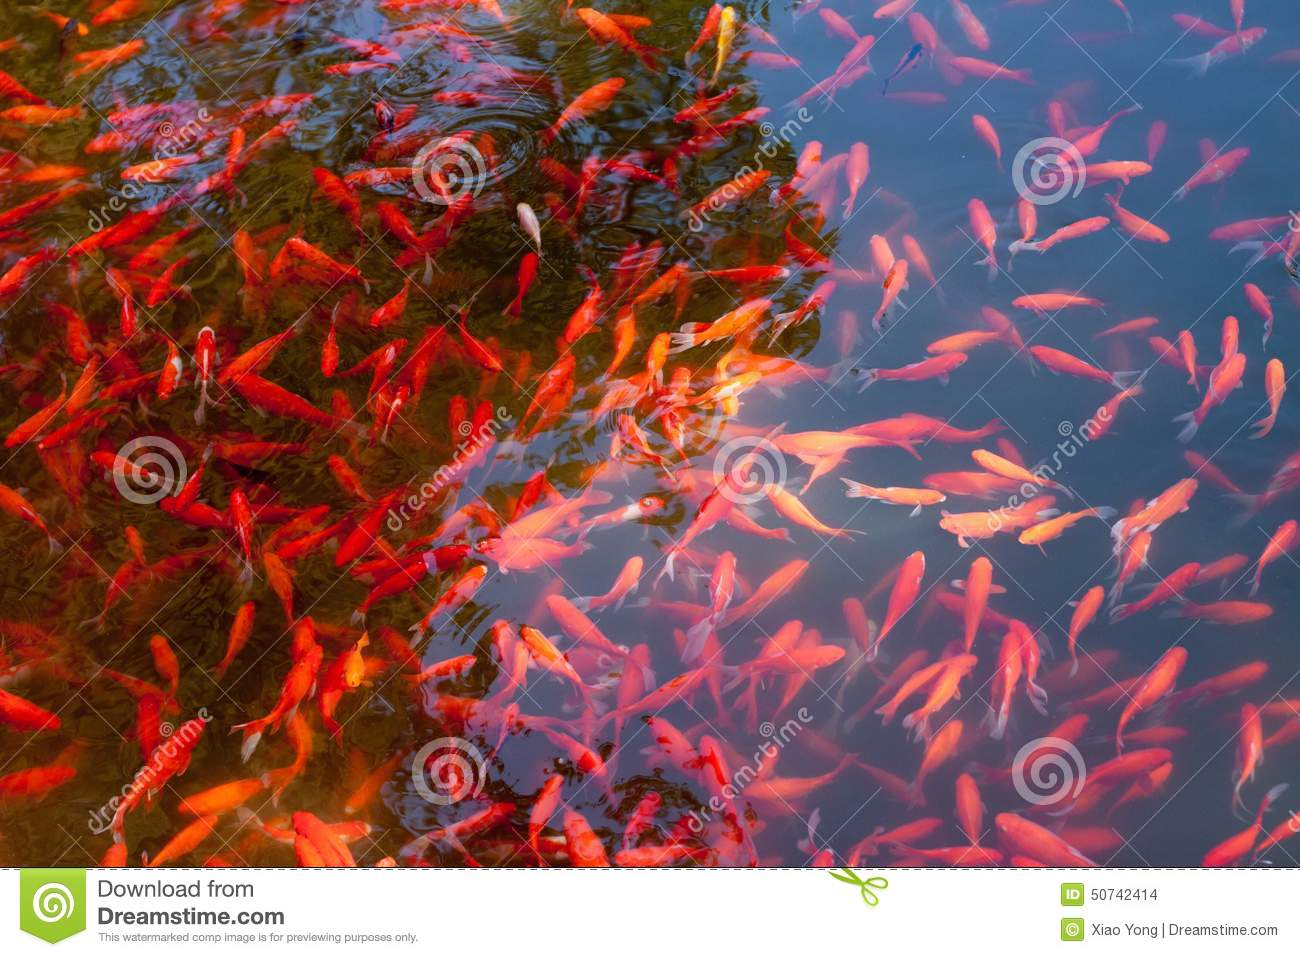 Cryprinus carpiod fishes stock photo. Image of artificial - 50742414